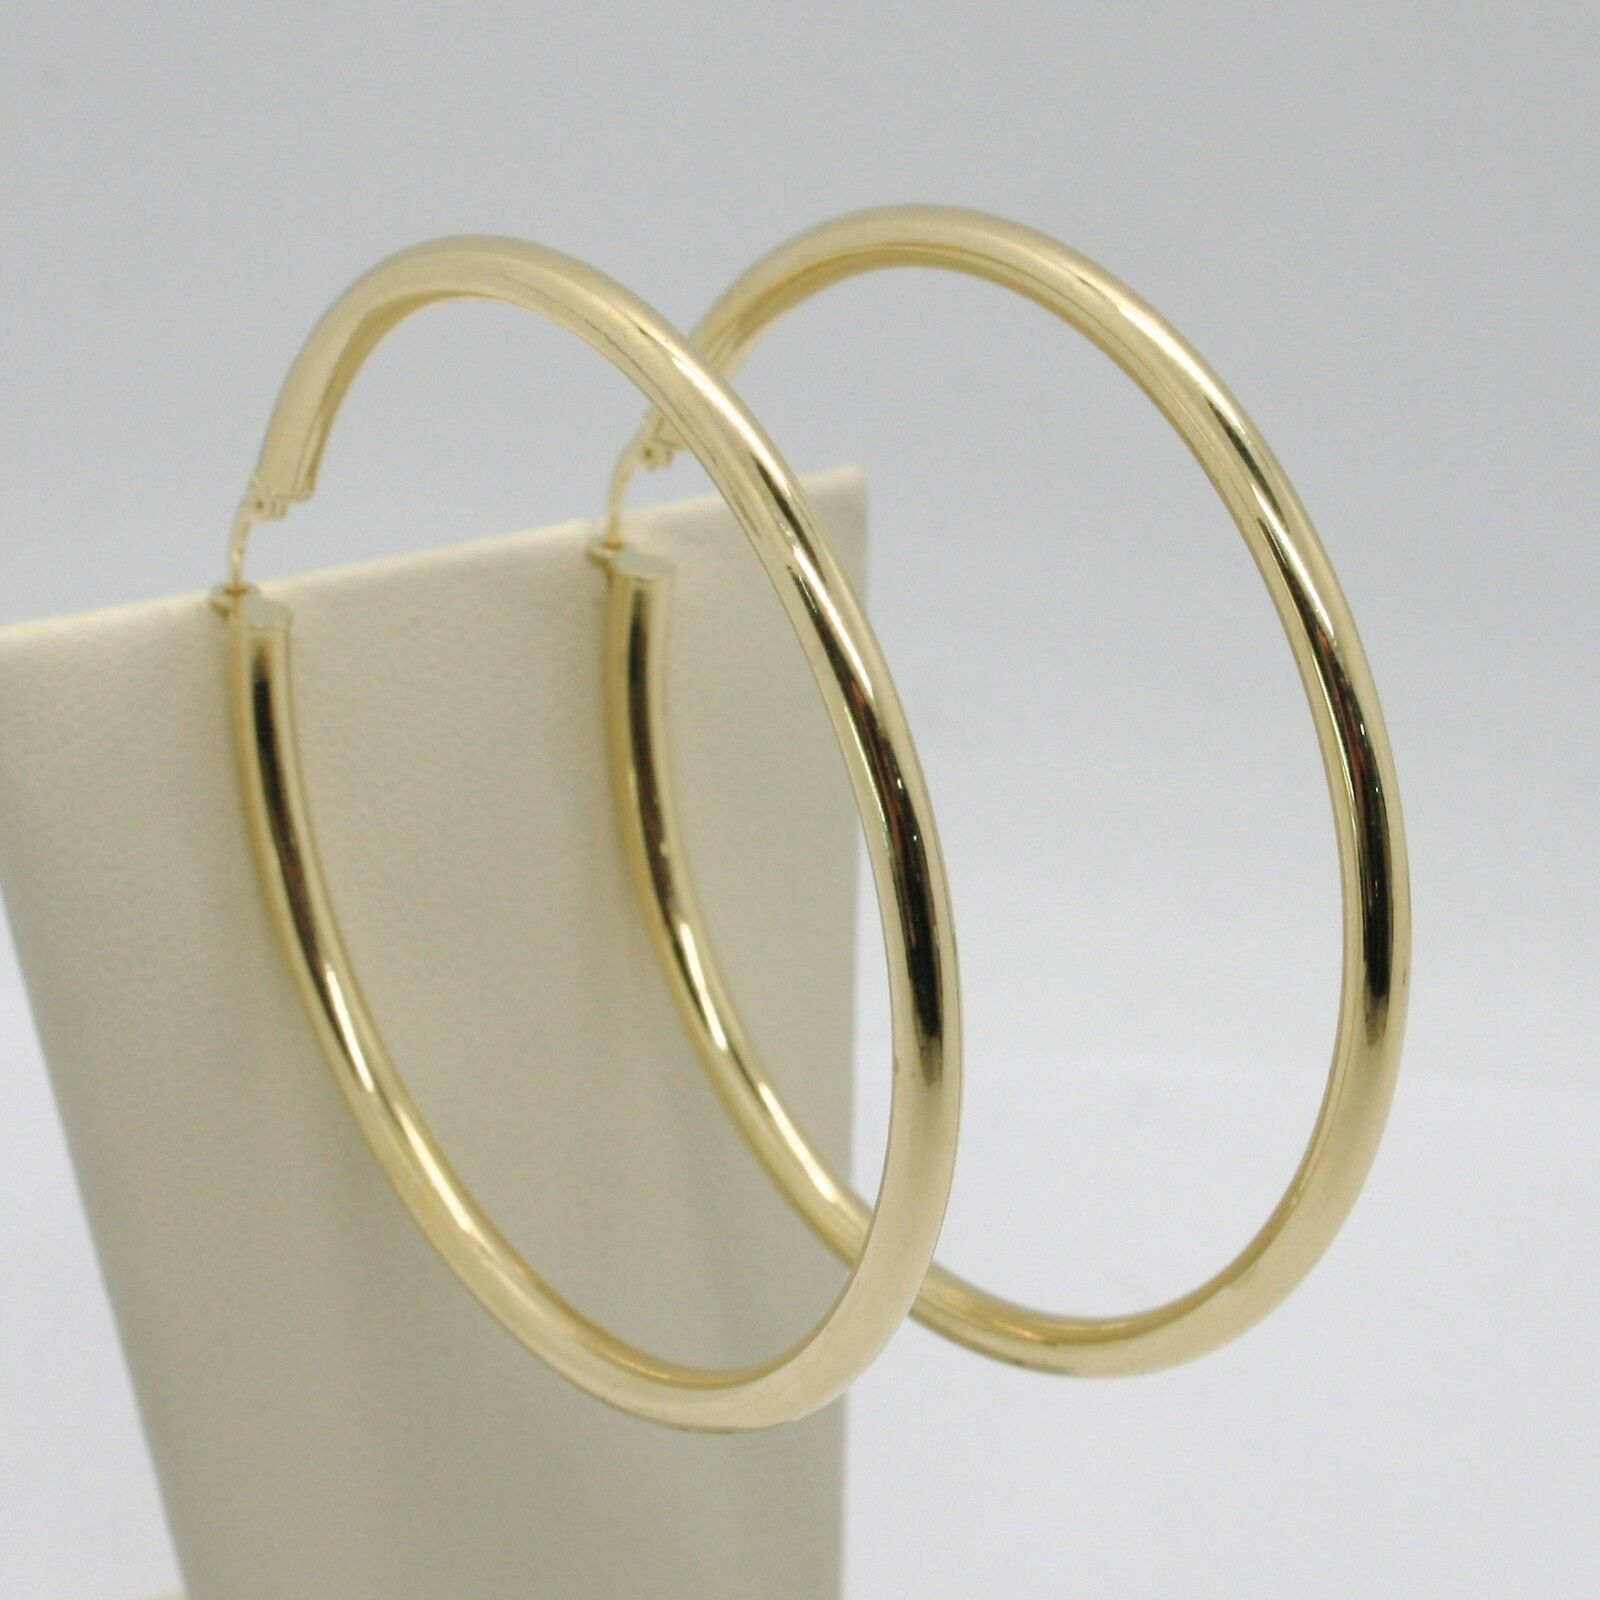 18K YELLOW GOLD ROUND CIRCLE EARRINGS DIAMETER 50 MM, WIDTH 3 MM, MADE IN ITALY